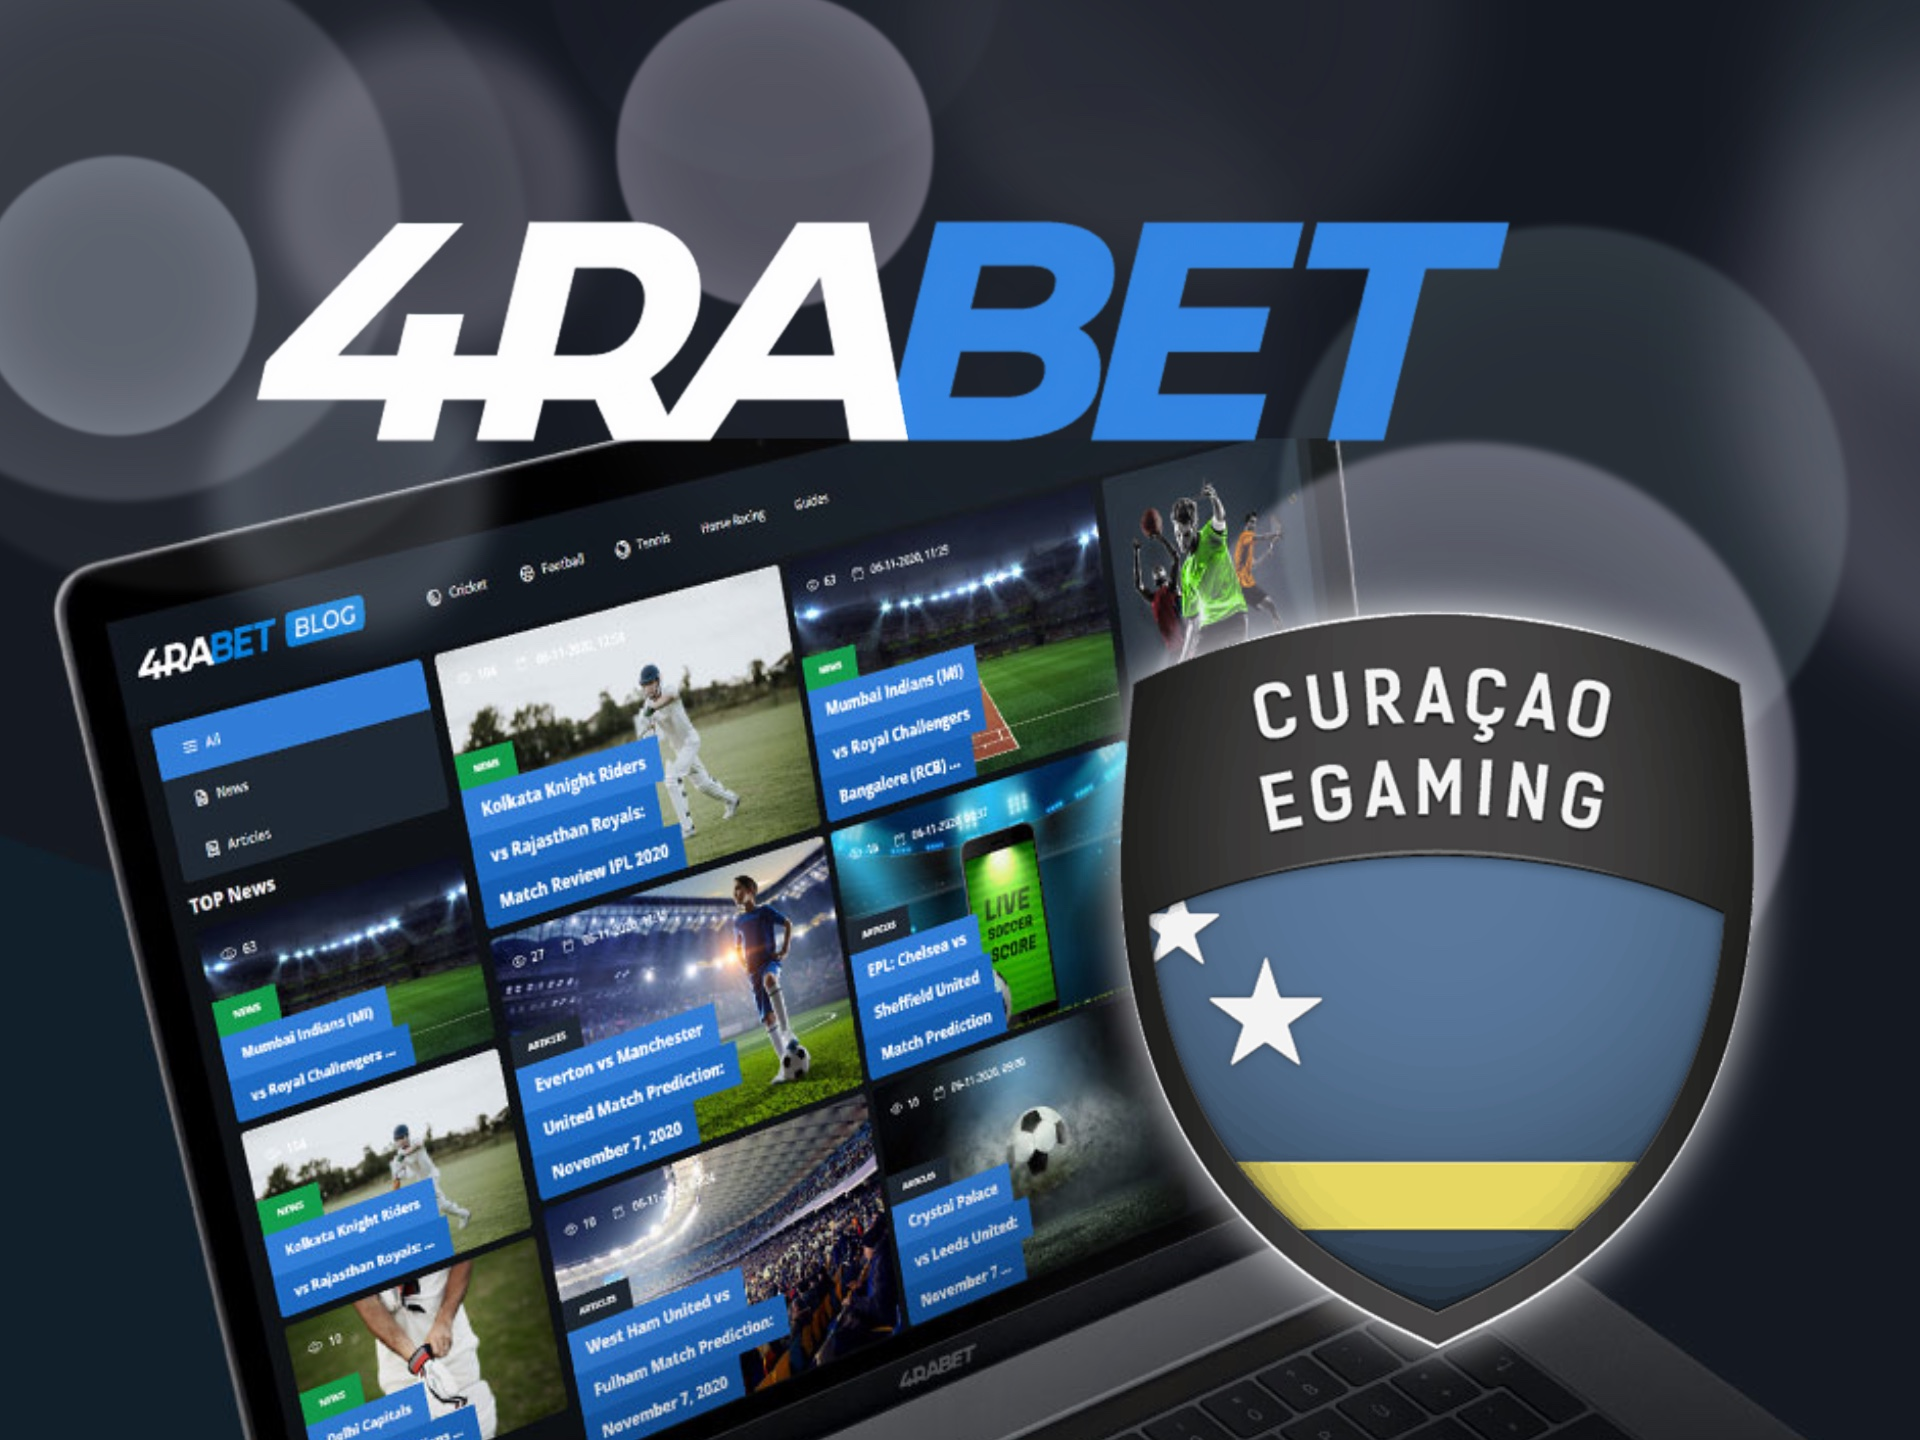 4rabet is properly licensed and is safe for betting.